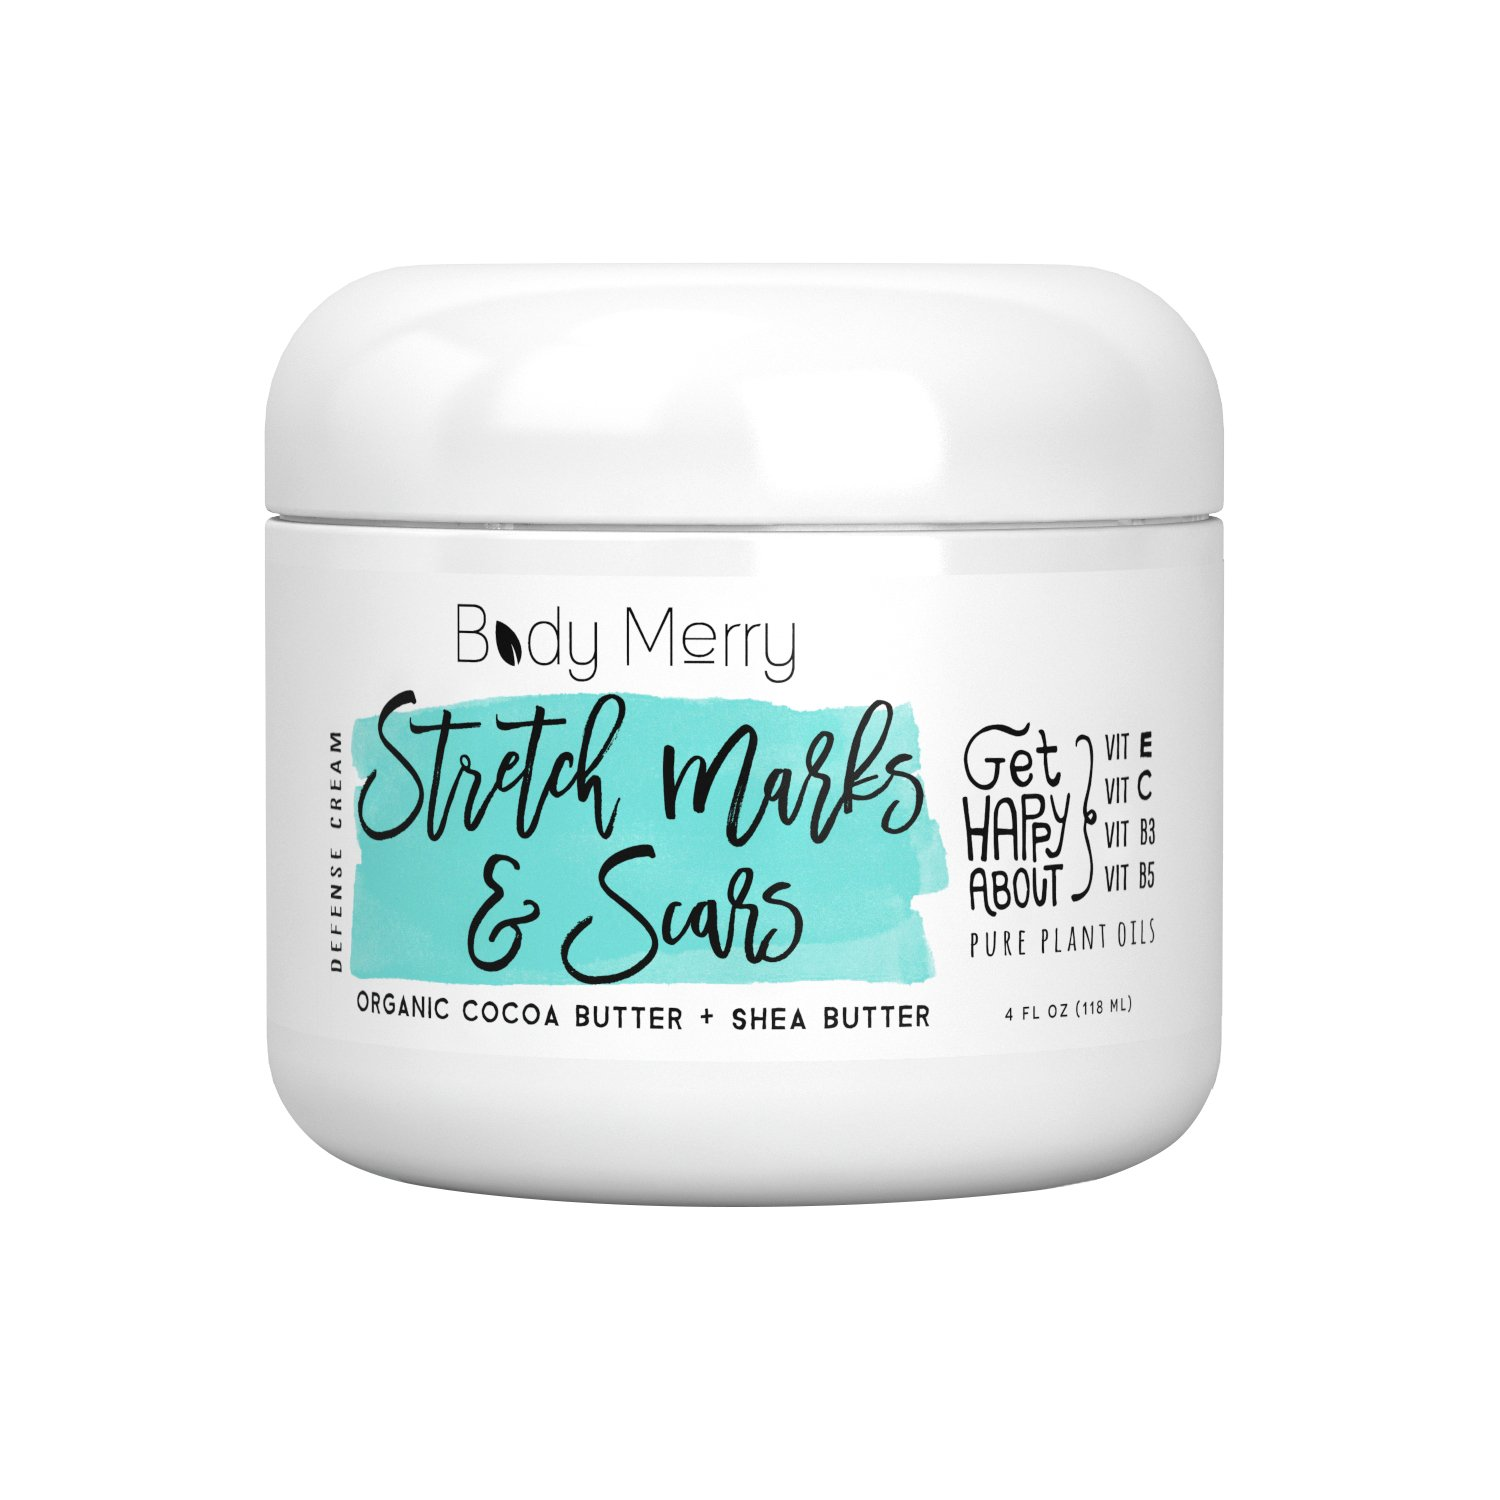 Stretch Marks & Scars Defense Cream- Daily Moisturizer w Organic Cocoa Butter + Shea + Plant Oils + Vitamins to Prevent, Reduce and Fade Away Old or New Scars Best for Pregnancy, Men/Bodybuilders